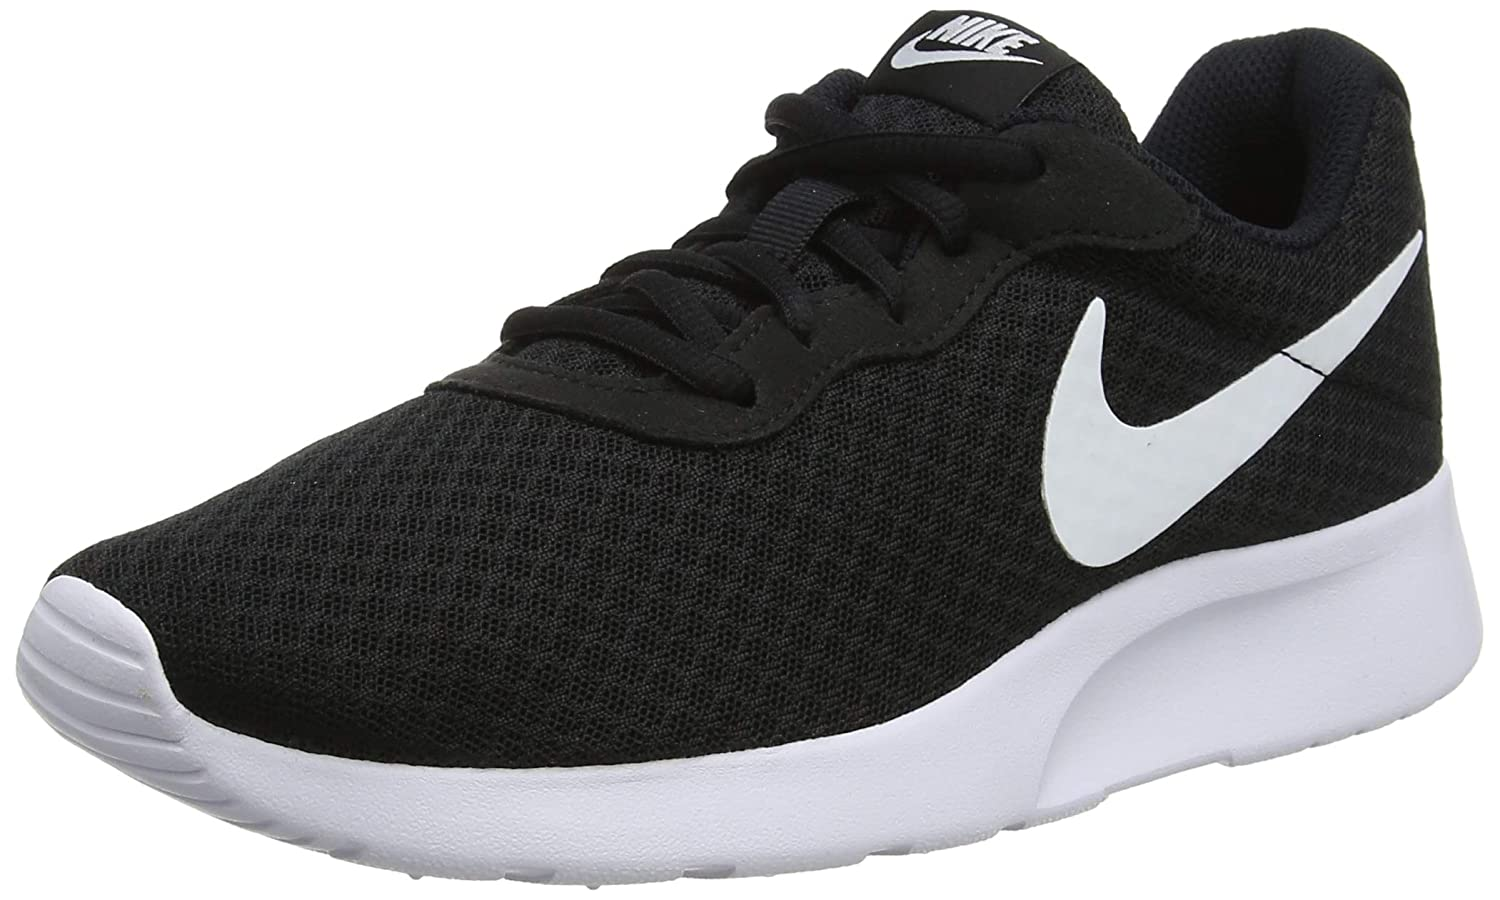 e8261aa88439 Amazon.com  NIKE Women s Tanjun Running Shoes  Nike  Shoes